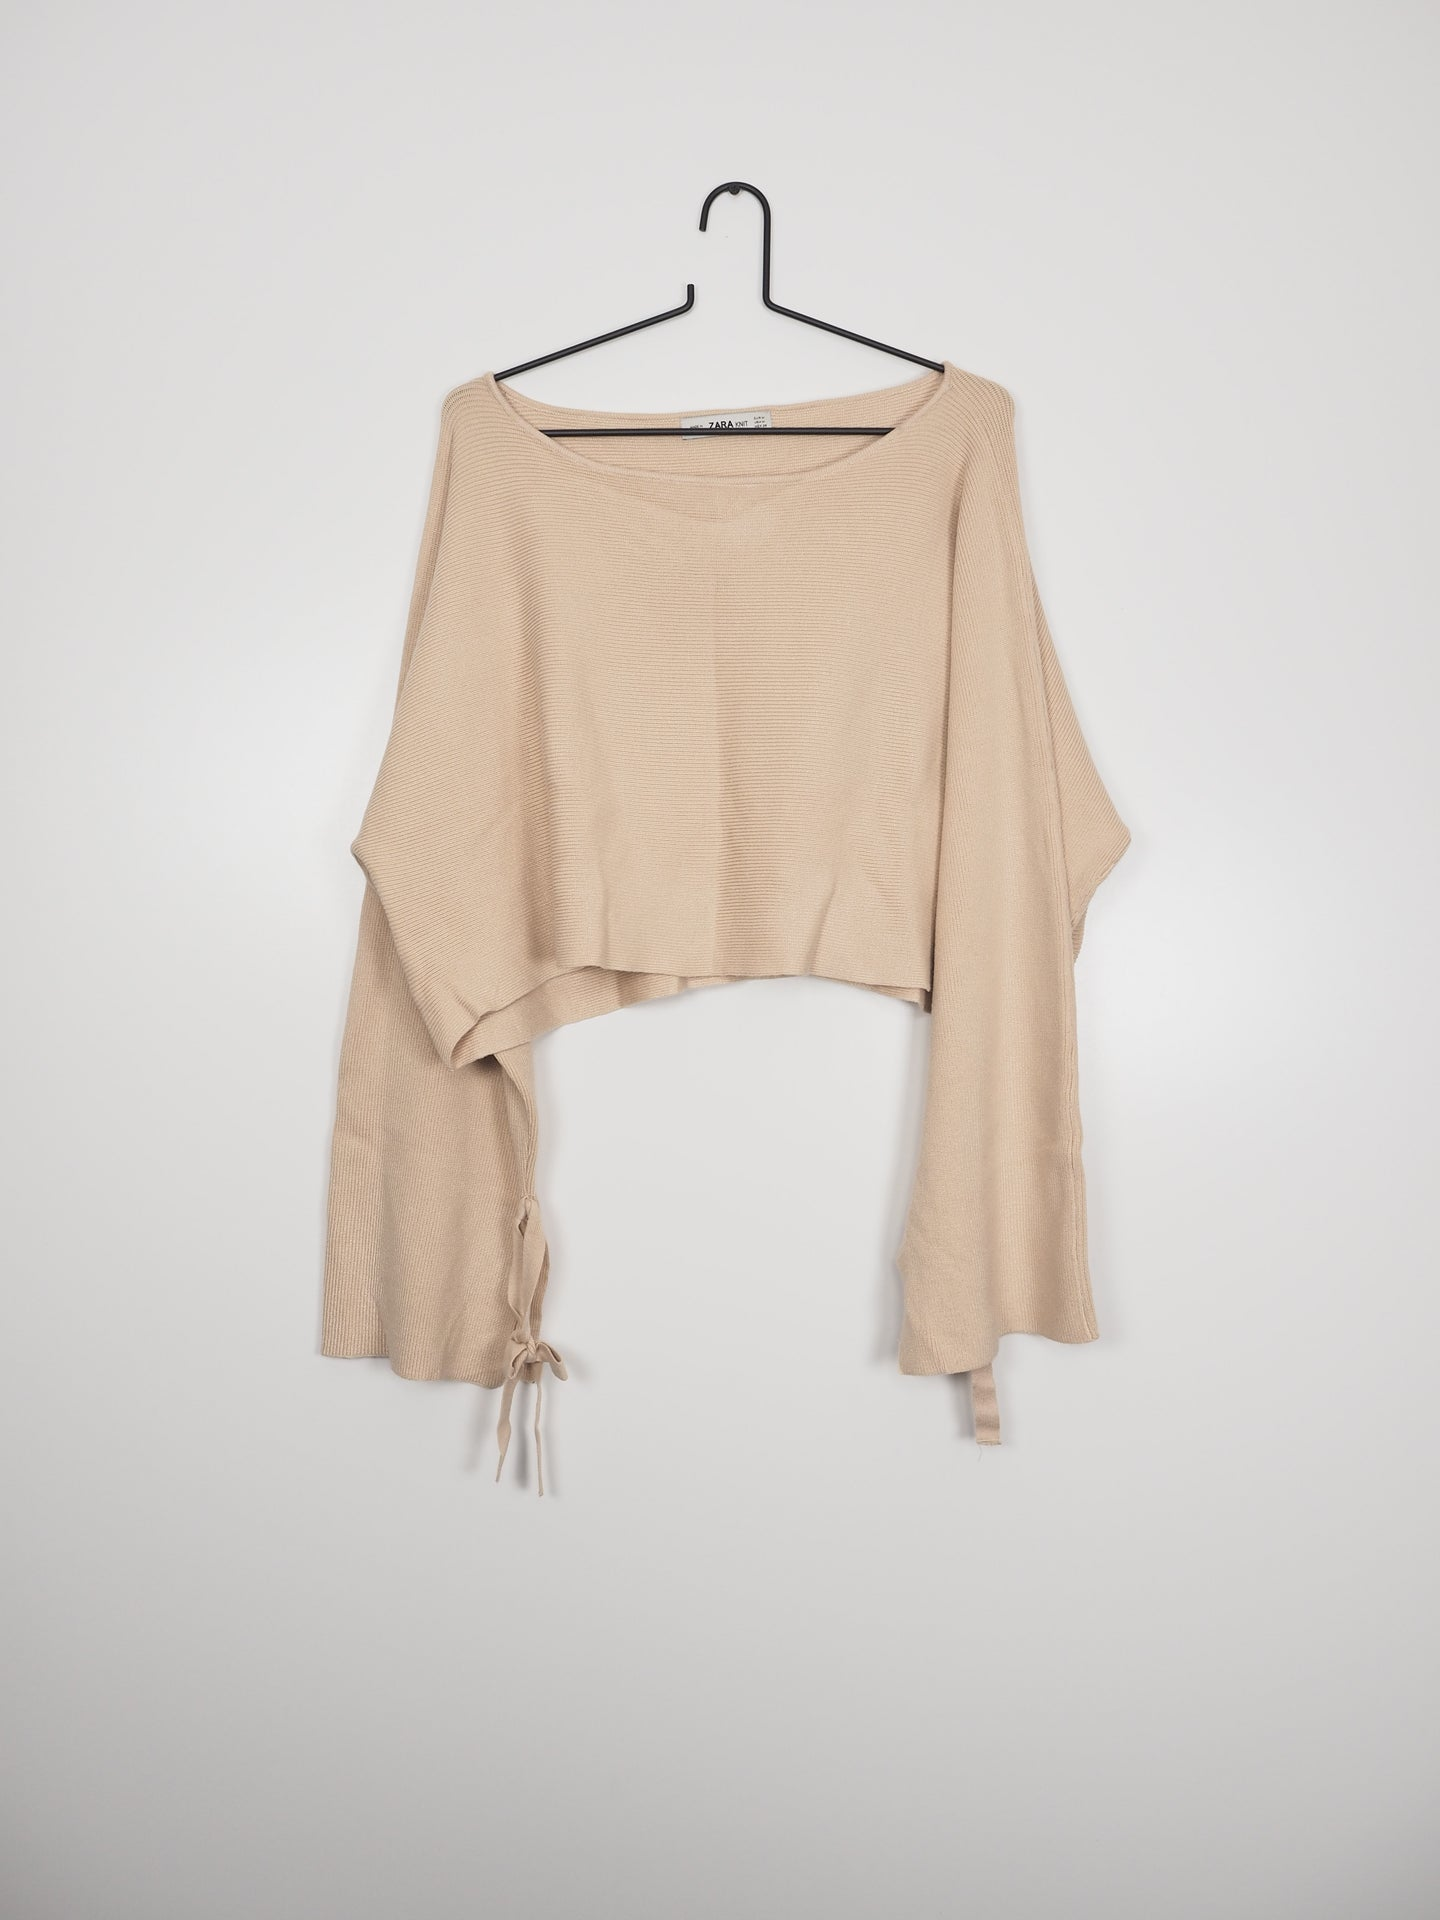 Beige knit crop top (Zara)